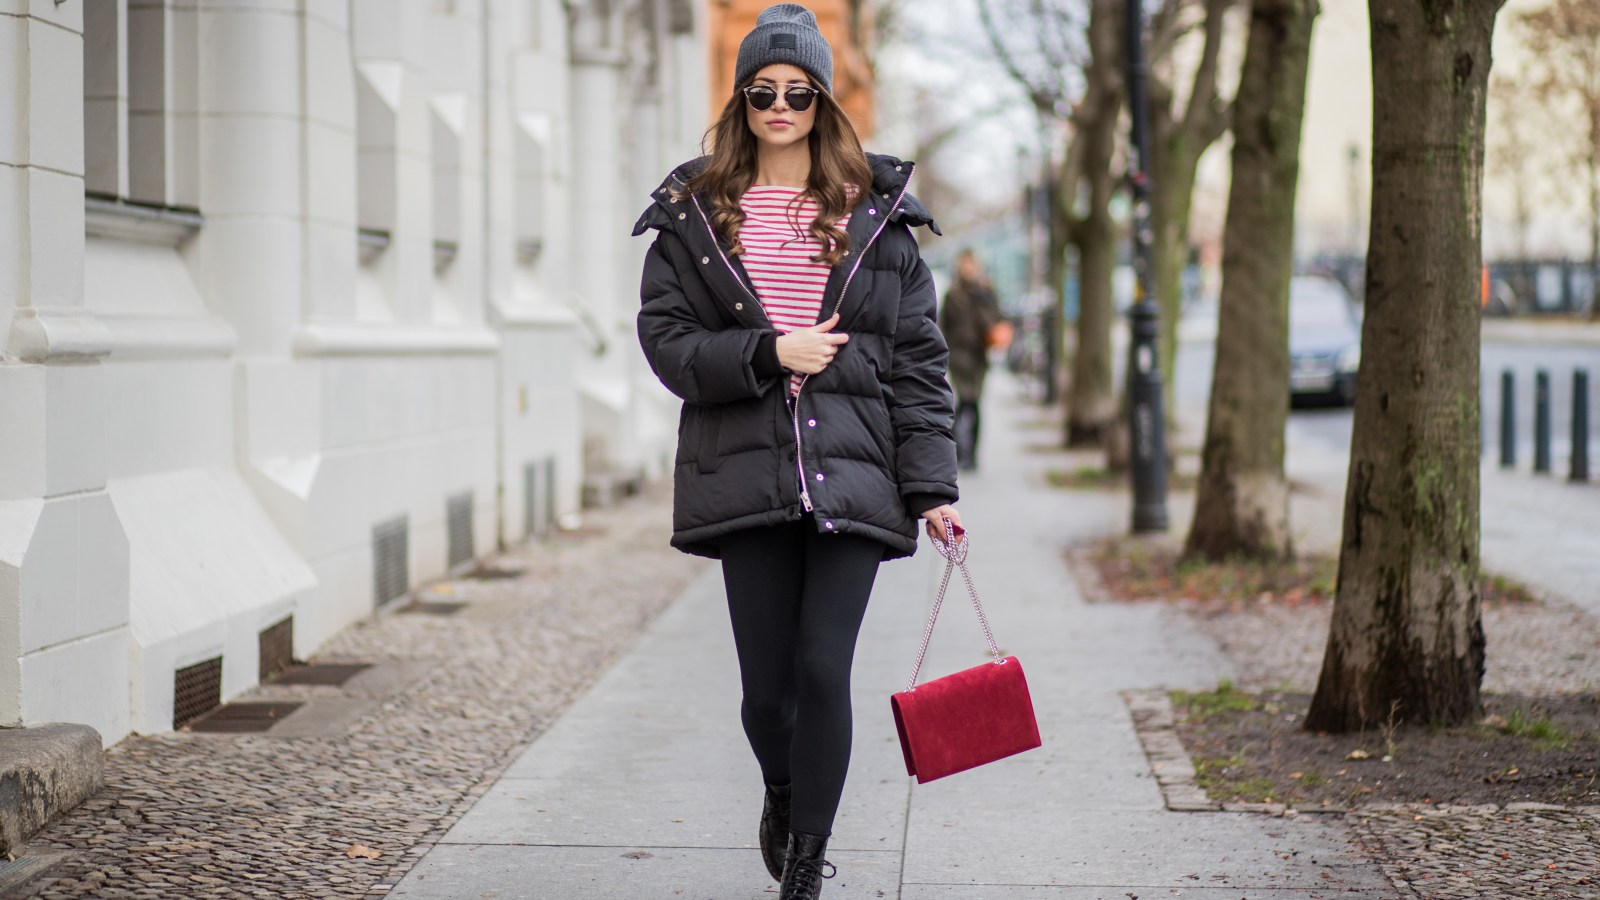 c6eff27c43c2f Nail Celebrity Street Style Looks With These Bestselling Leggings From  Amazon